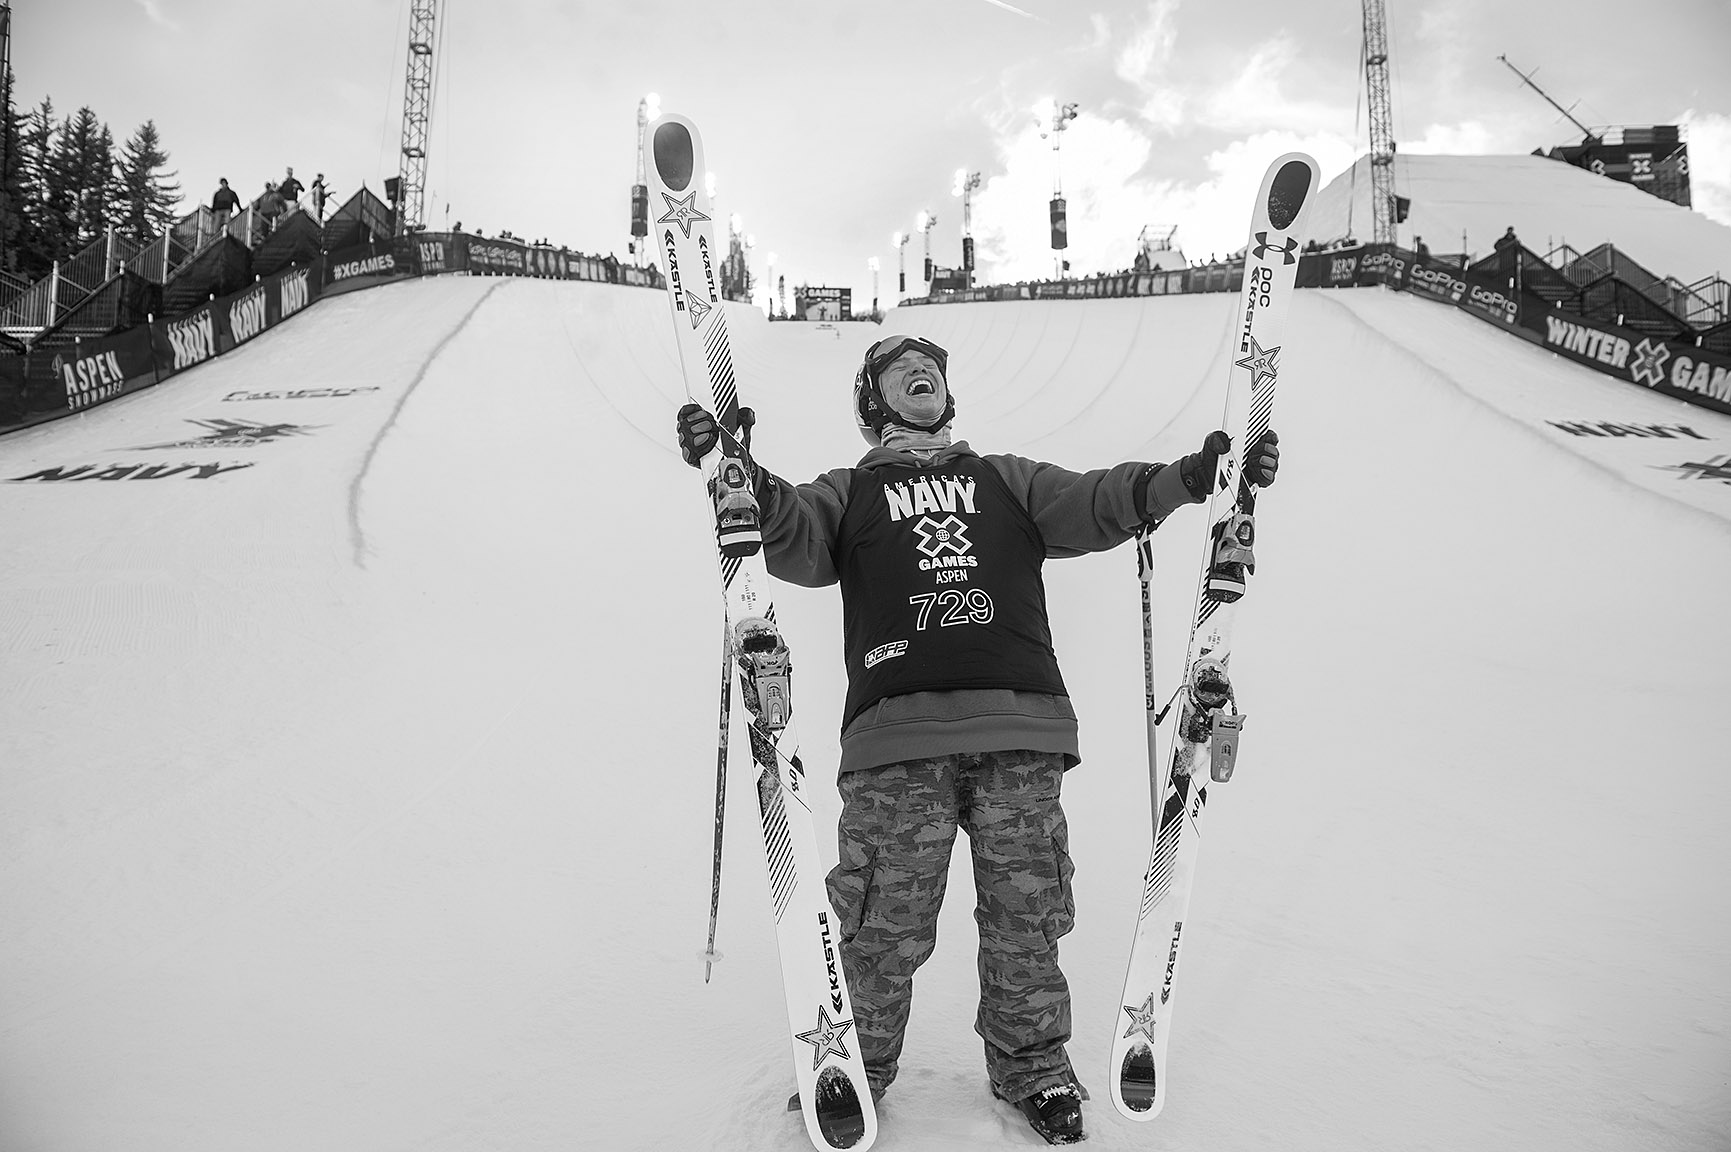 Men's Ski Pipe: Alex Ferreira